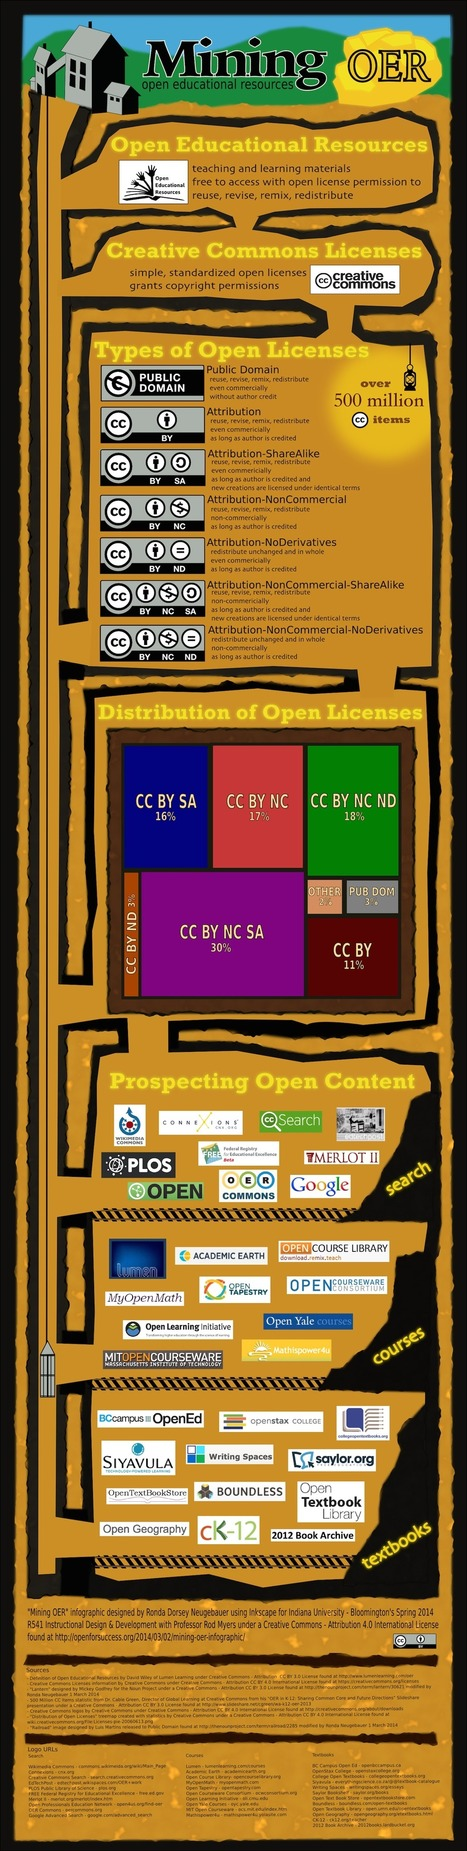 Mining OER infographic | E-learning and MOOC | Scoop.it